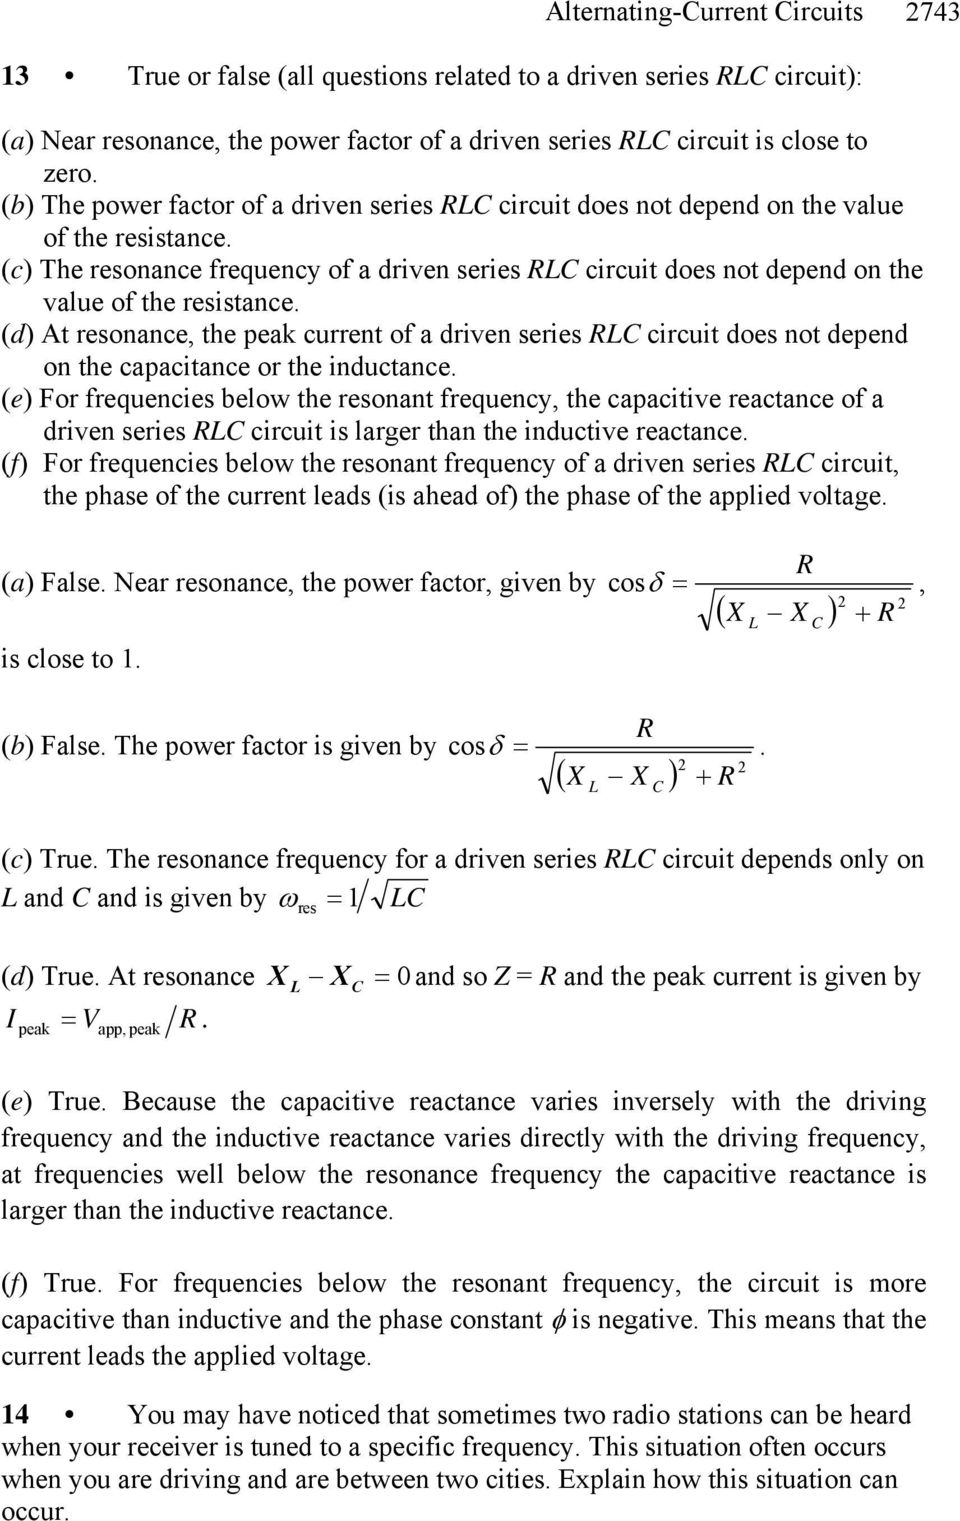 Chapter 29 Alternating Current Circuits Pdf Inductors In Ac Inductive Reactive And Phasor Diagrams D At Resonance The Of A Driven Series Circuit Does Not Depend